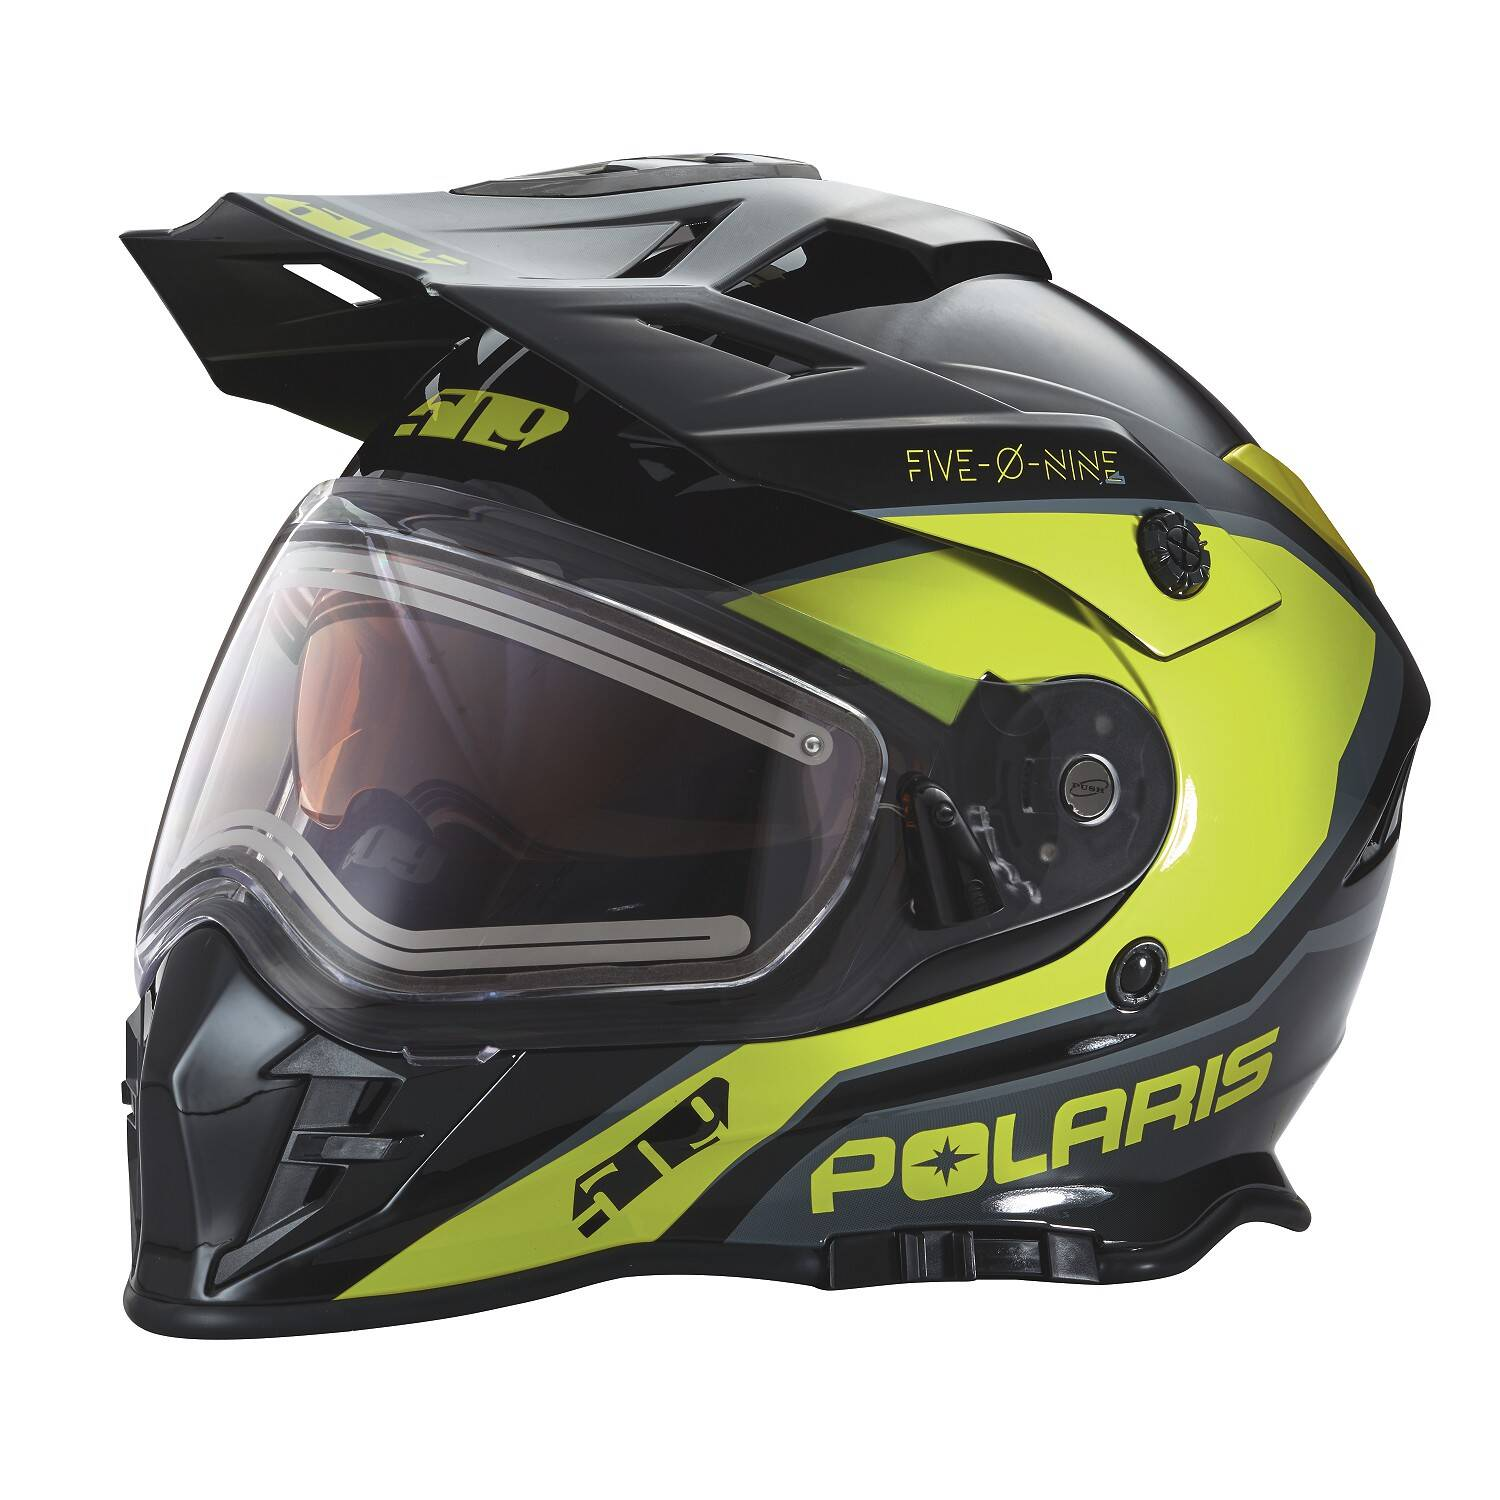 509® Delta Adult Moto Helmet with Removable Electric Shield, Black/Lime